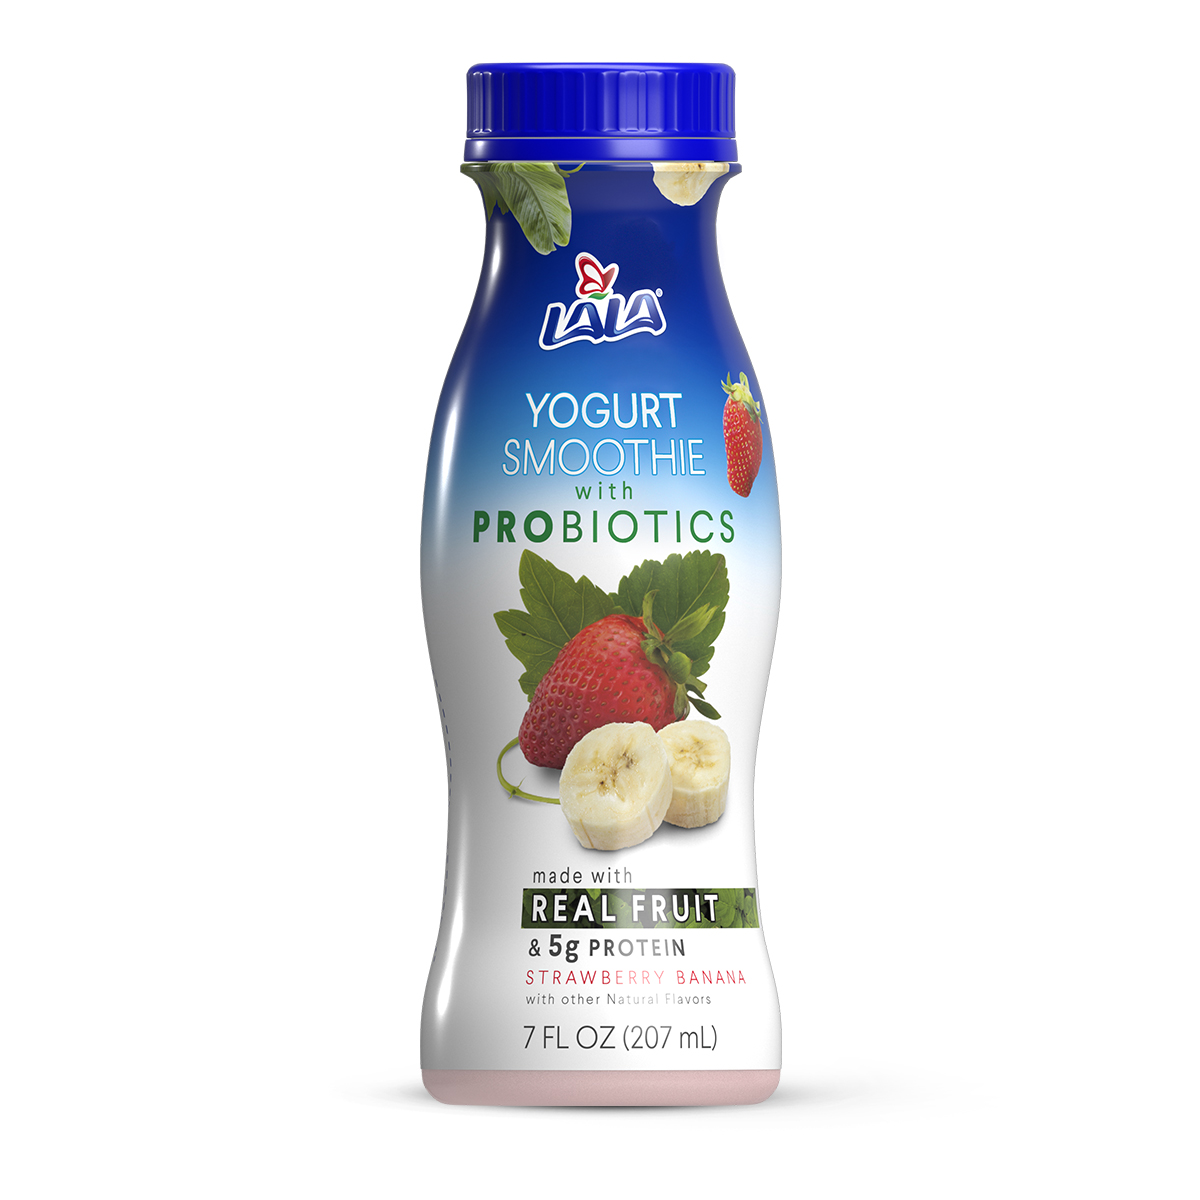 LALA Drinkable Yogurt Smoothie with Probiotics, 5g of Protein, Strawberry Banana, 7-Ounce Bottle